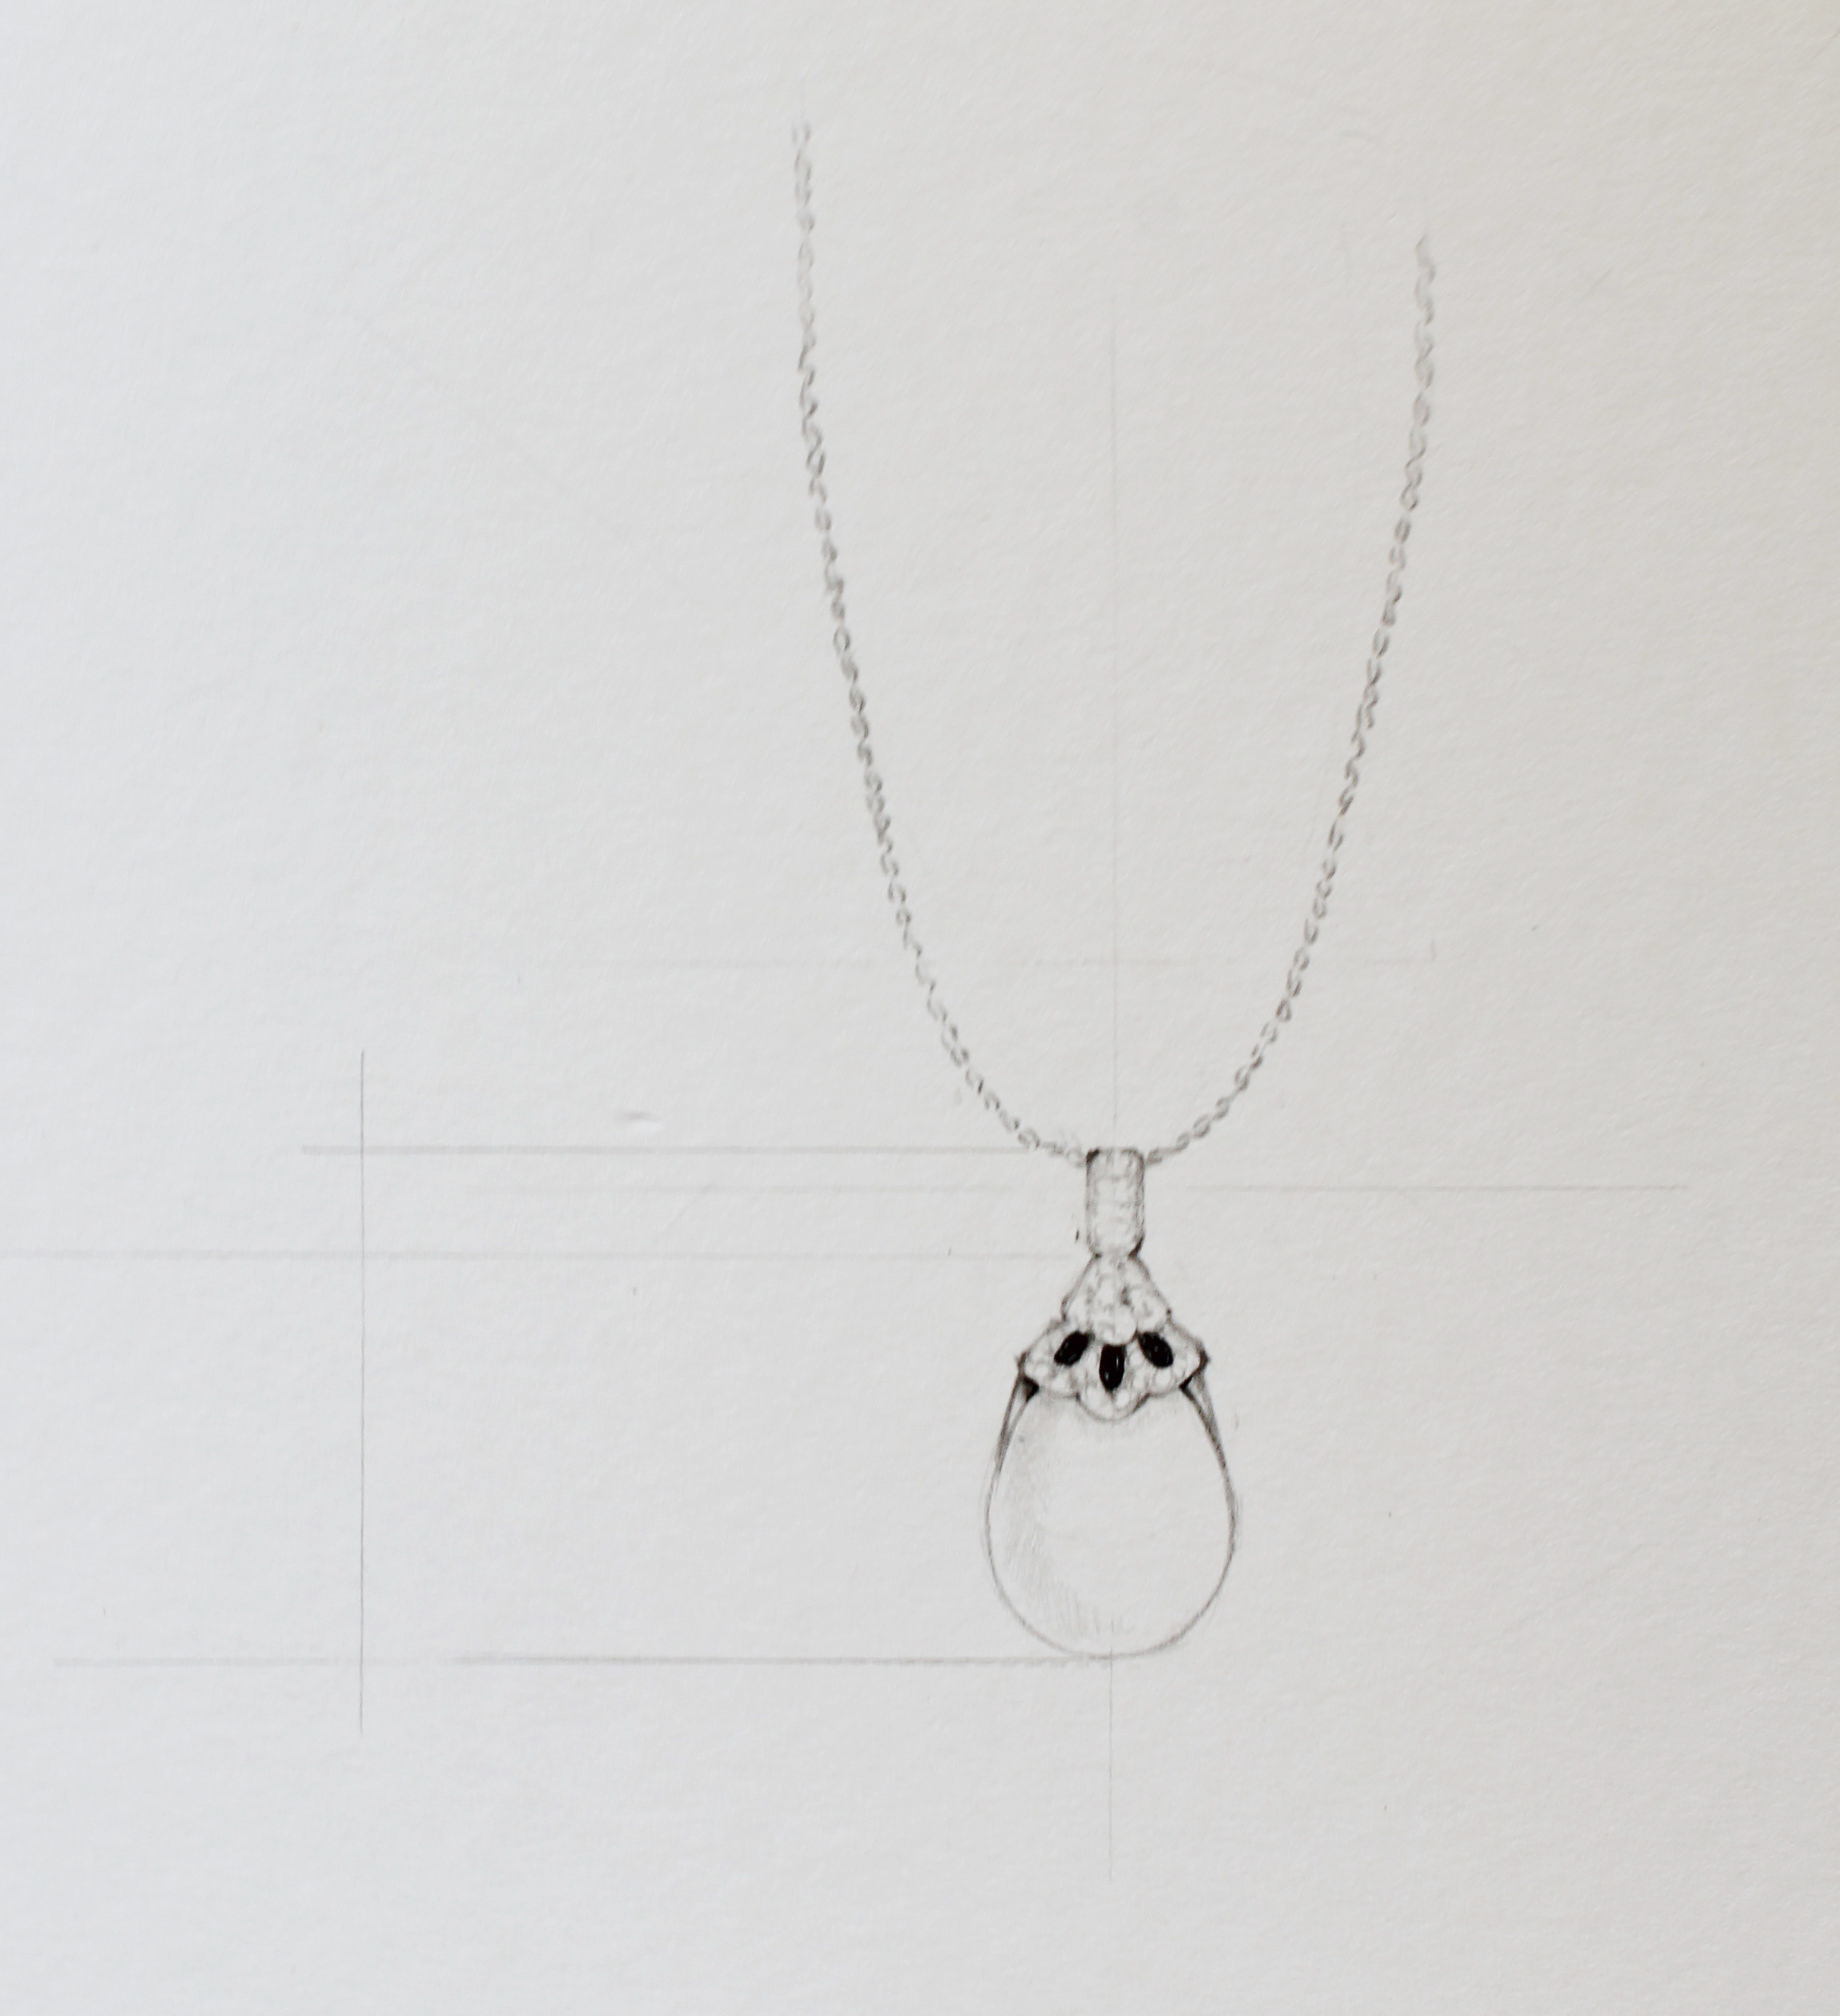 Drawn necklace Drawing To step 5 How